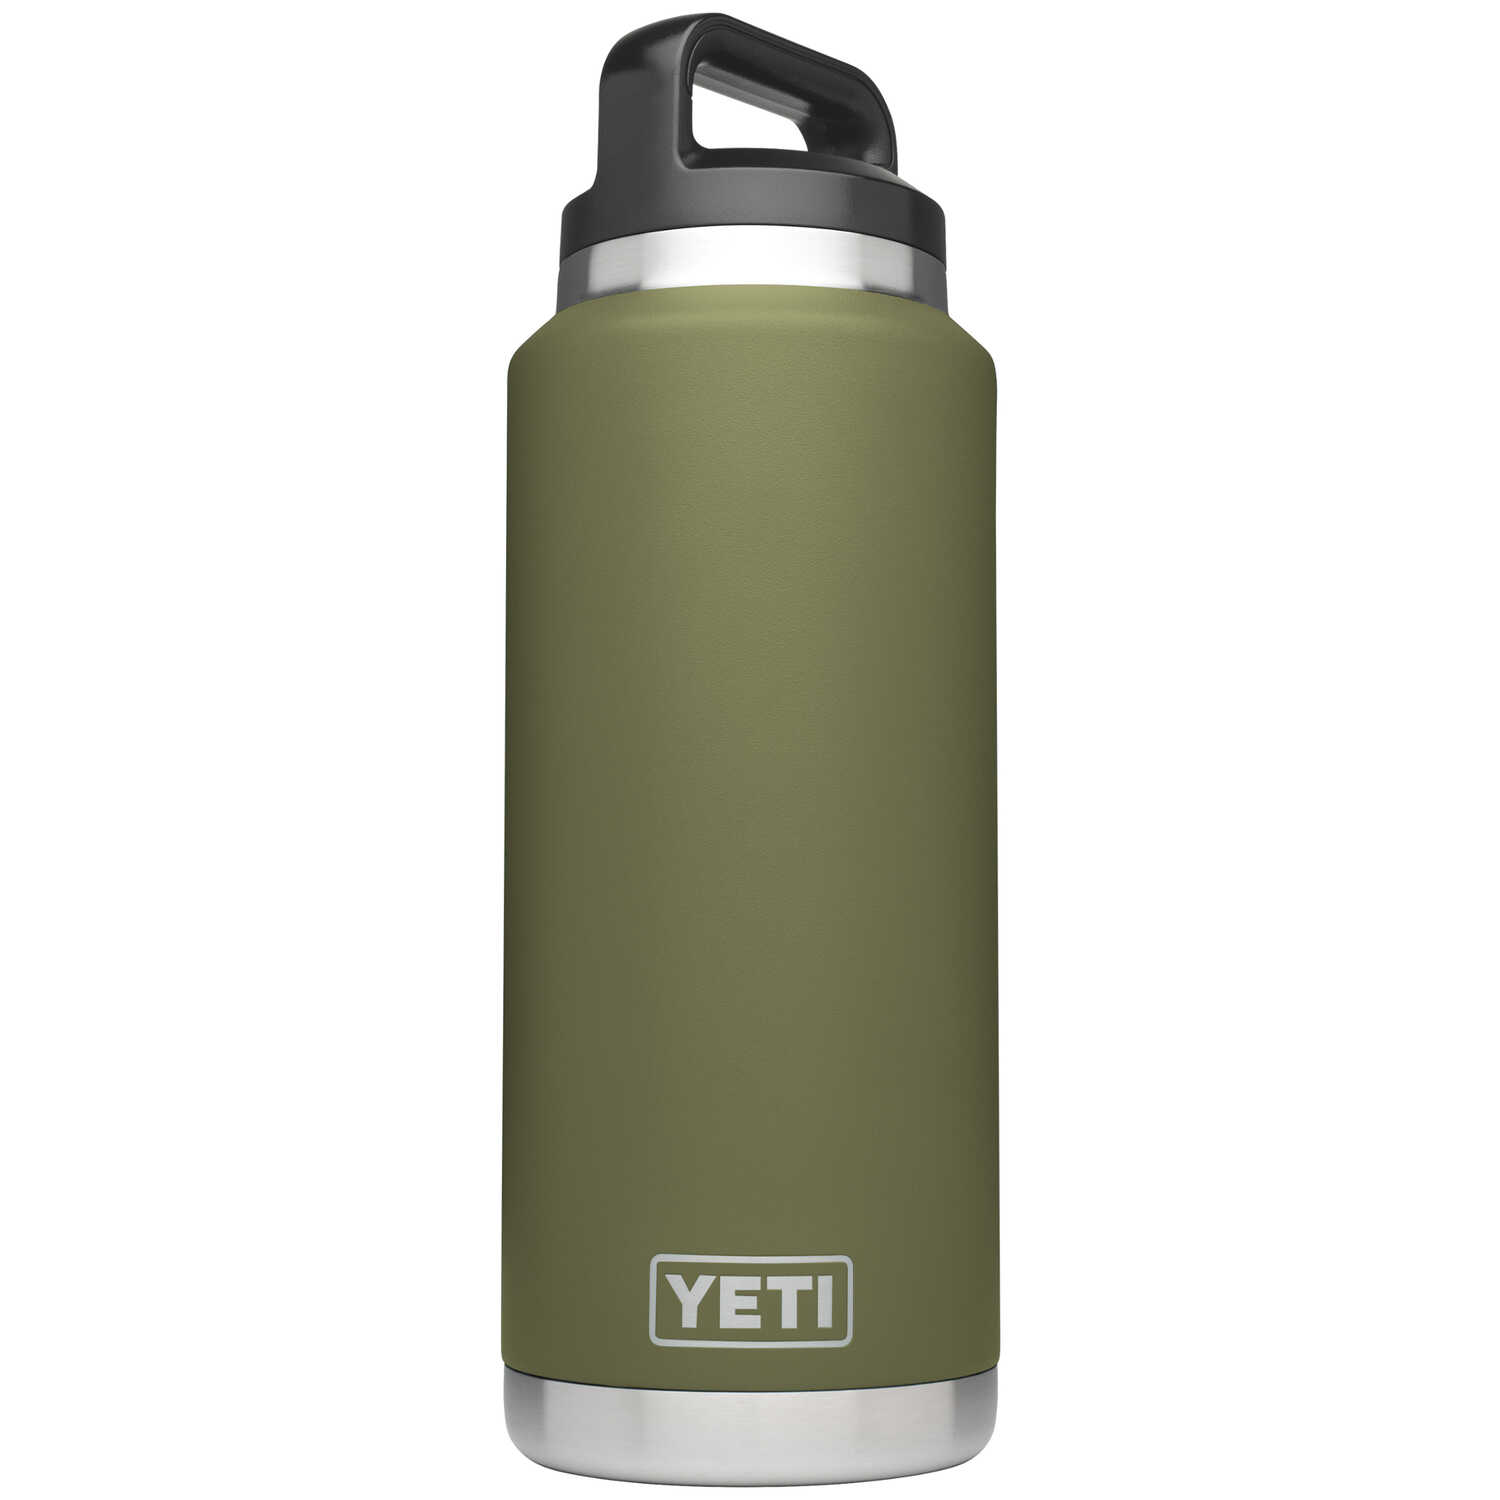 YETI  Rambler  36 oz. Insulated Bottle  Olive Green